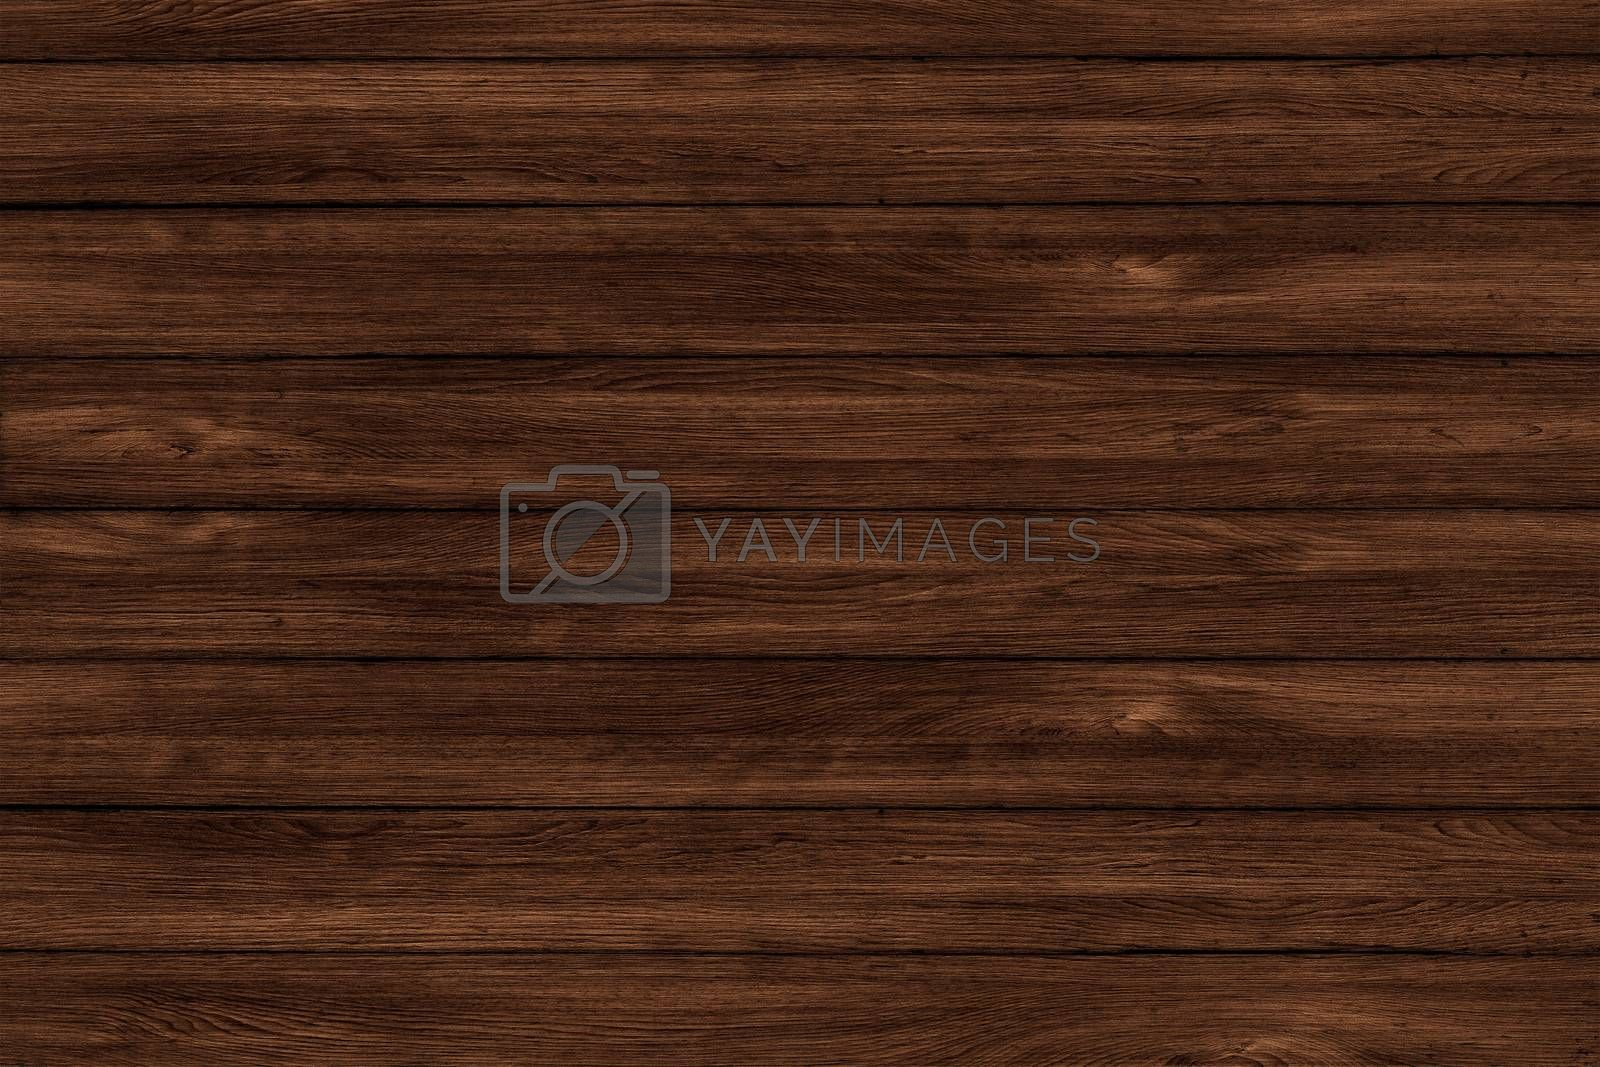 Grunge wood pattern texture background, wooden planks. by ivo_13